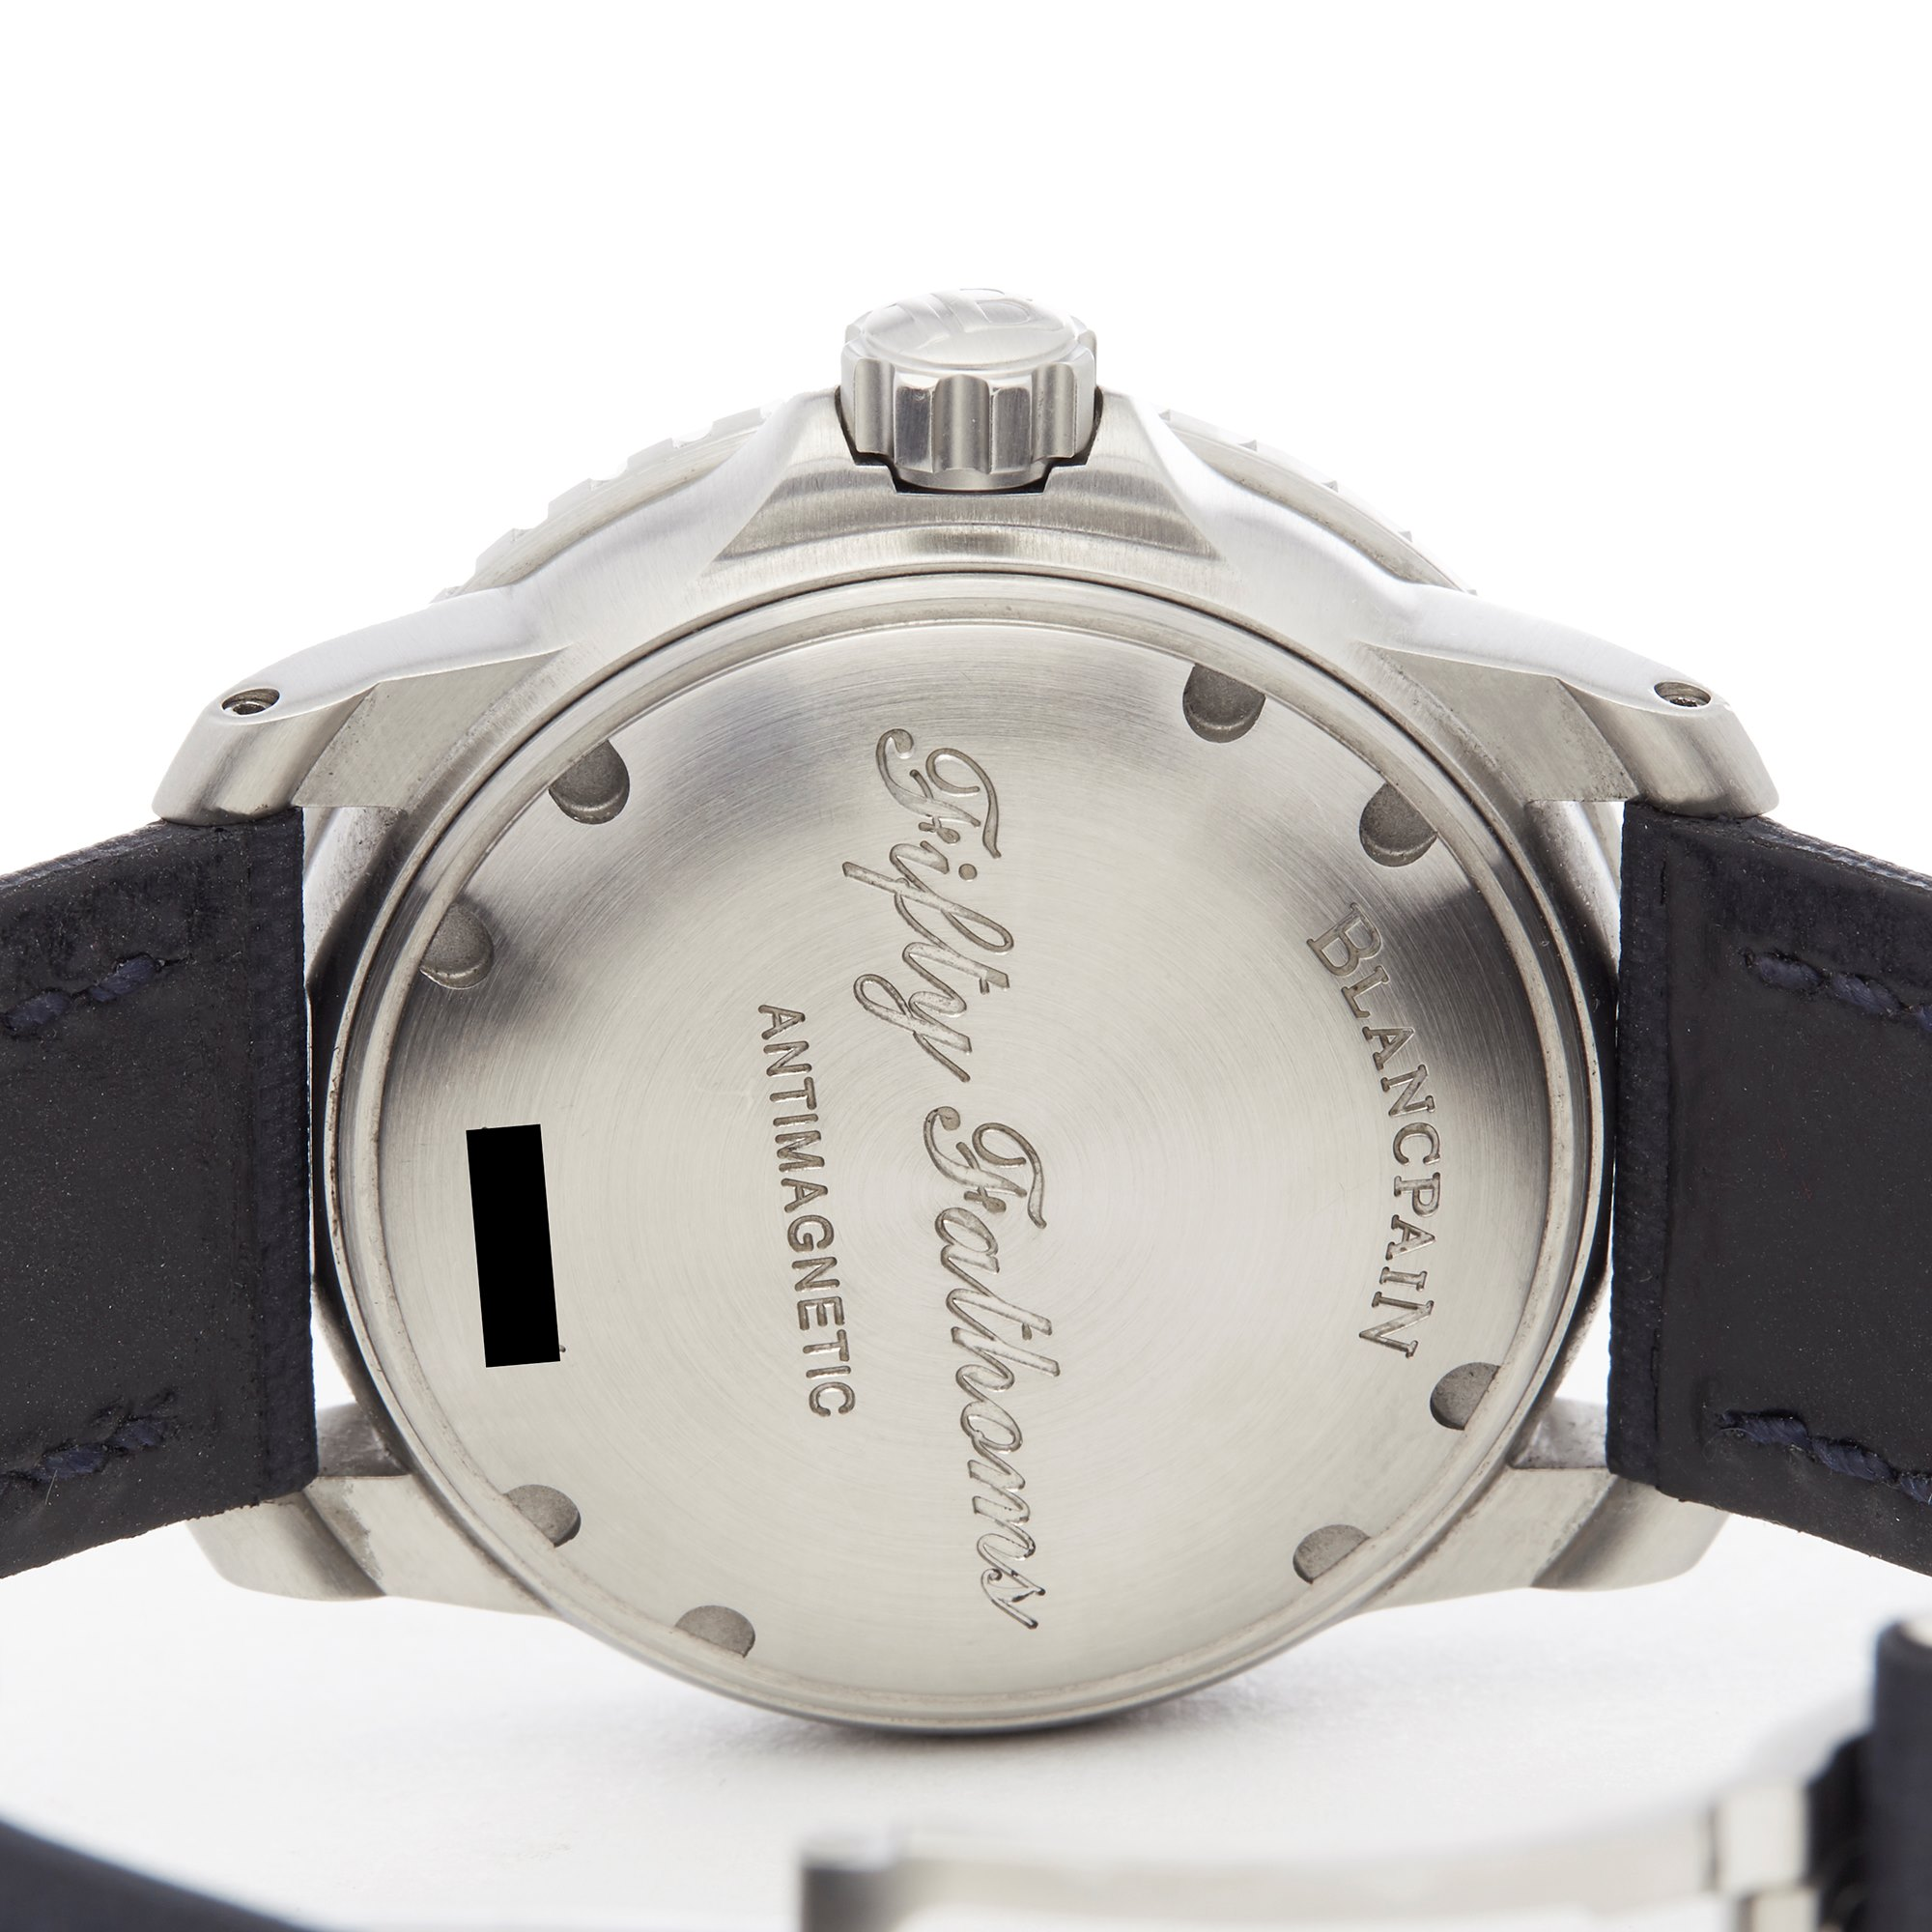 Blancpain Fifty Fathoms Roestvrij Staal 5015D-1140-52B